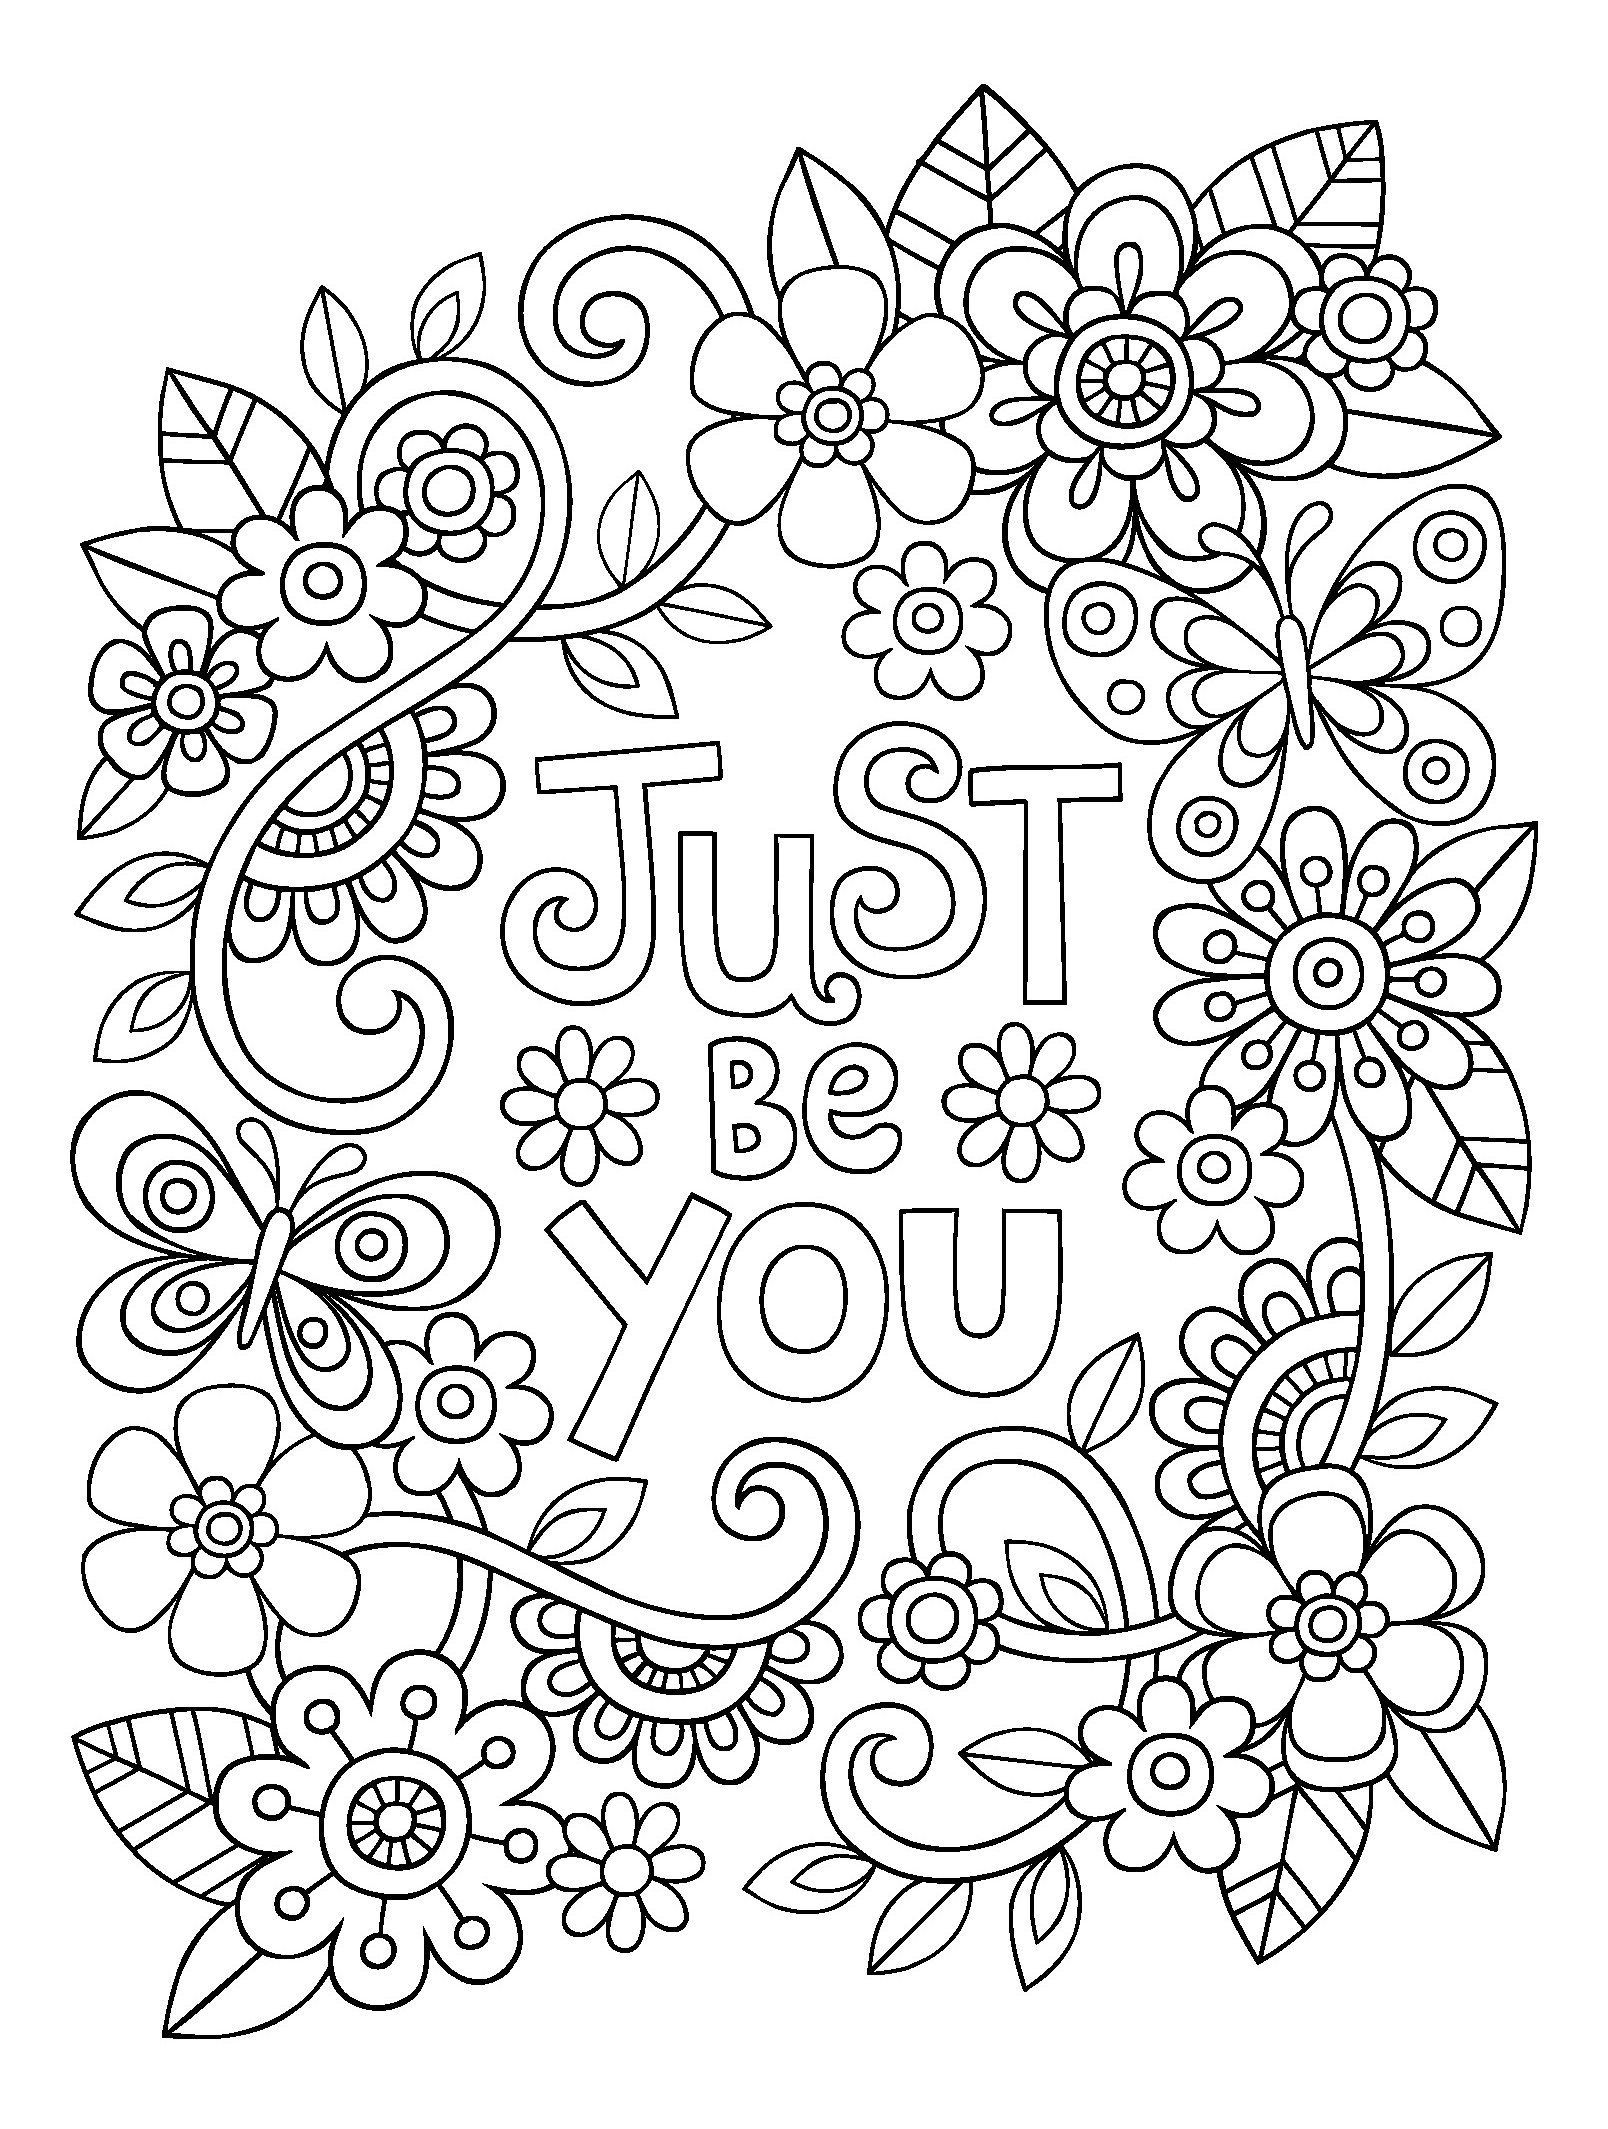 Related Image Coloring Pages Inspirational Coloring Pages Coloring Book Pages